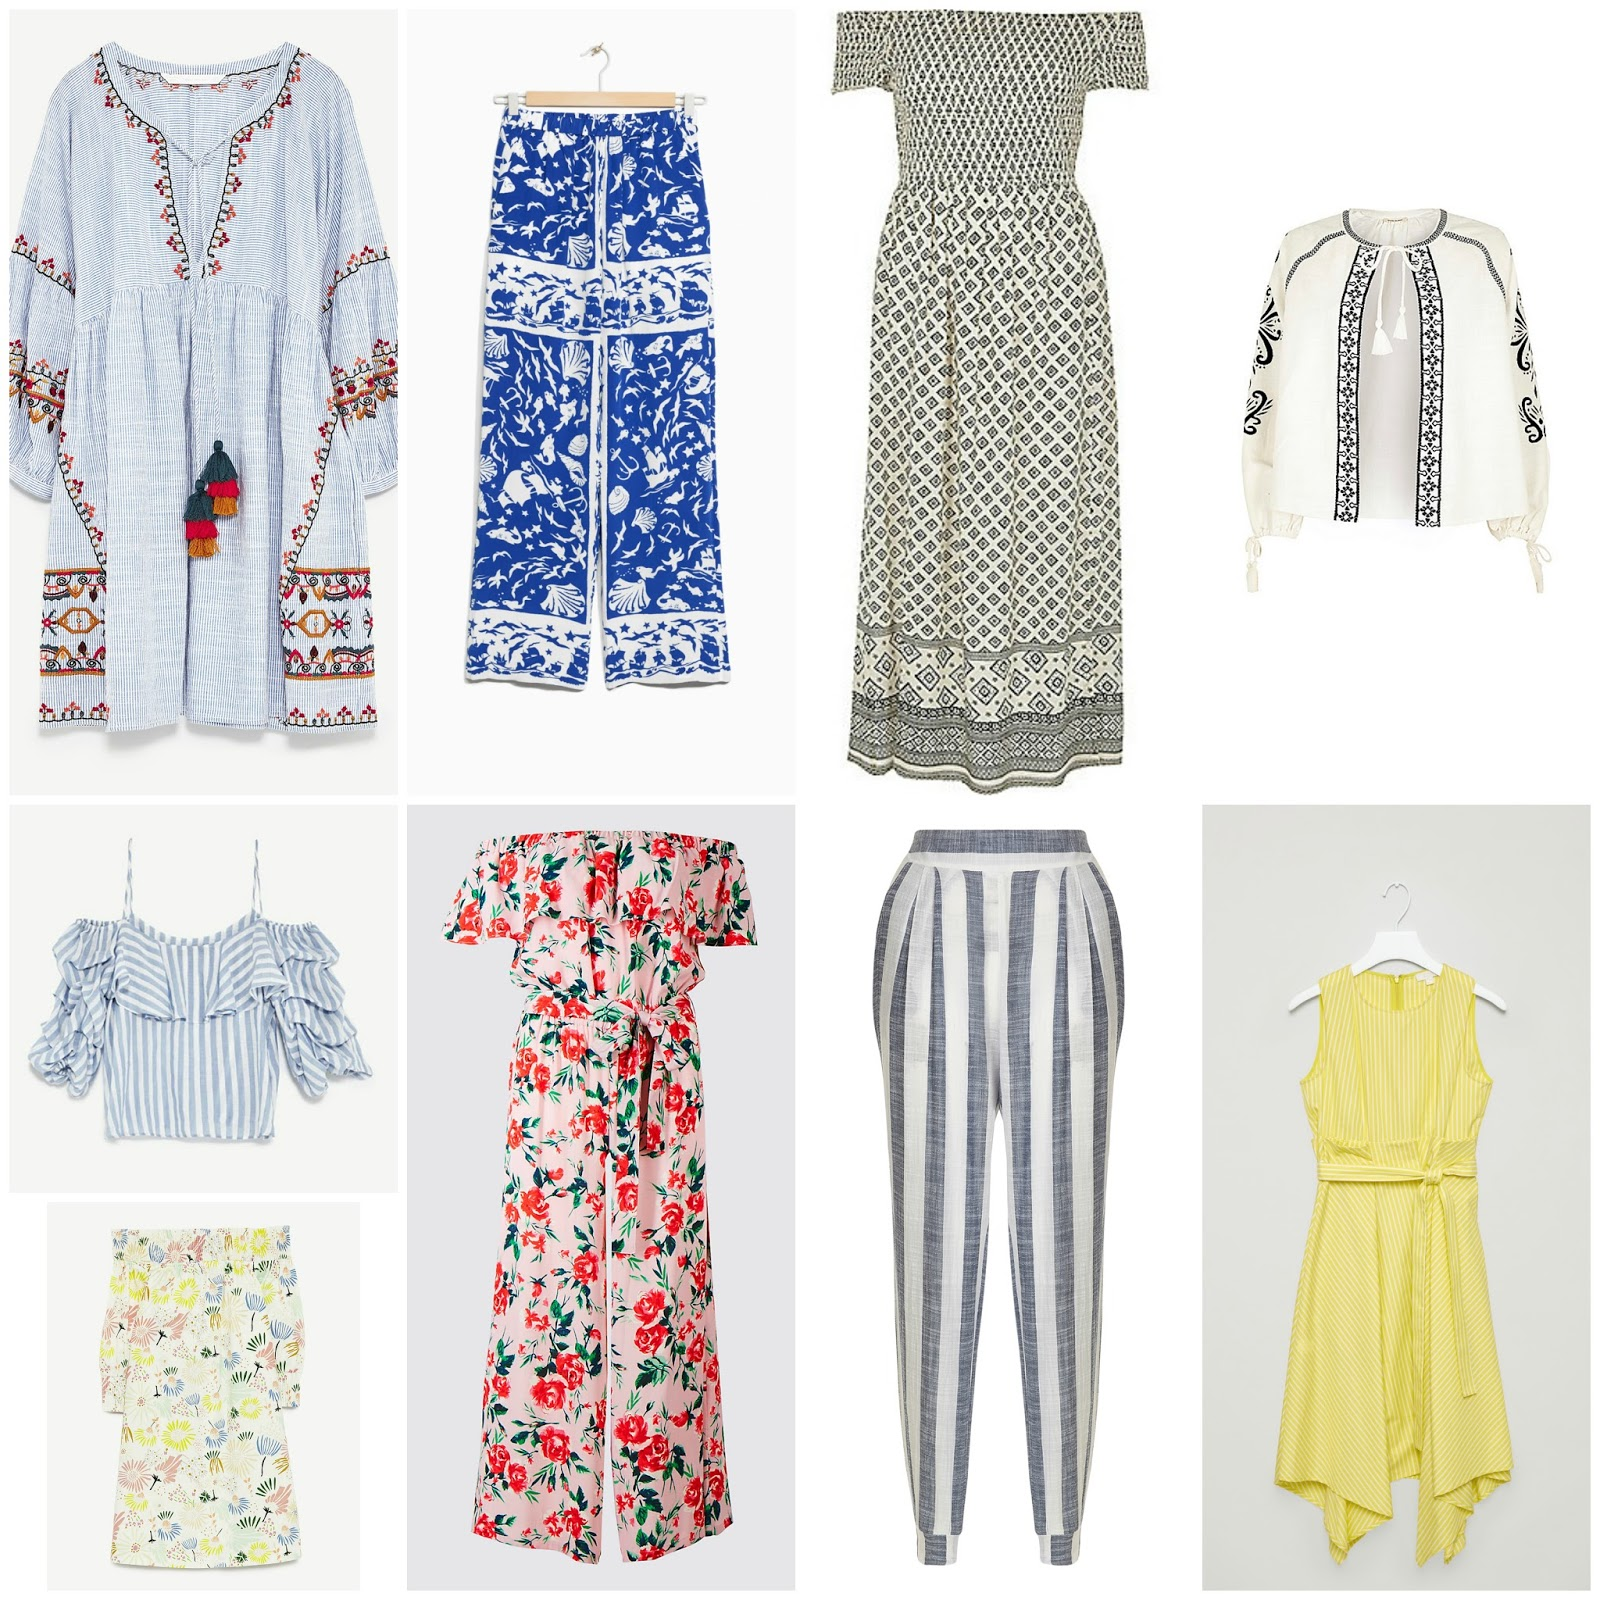 High Street Holiday Pieces